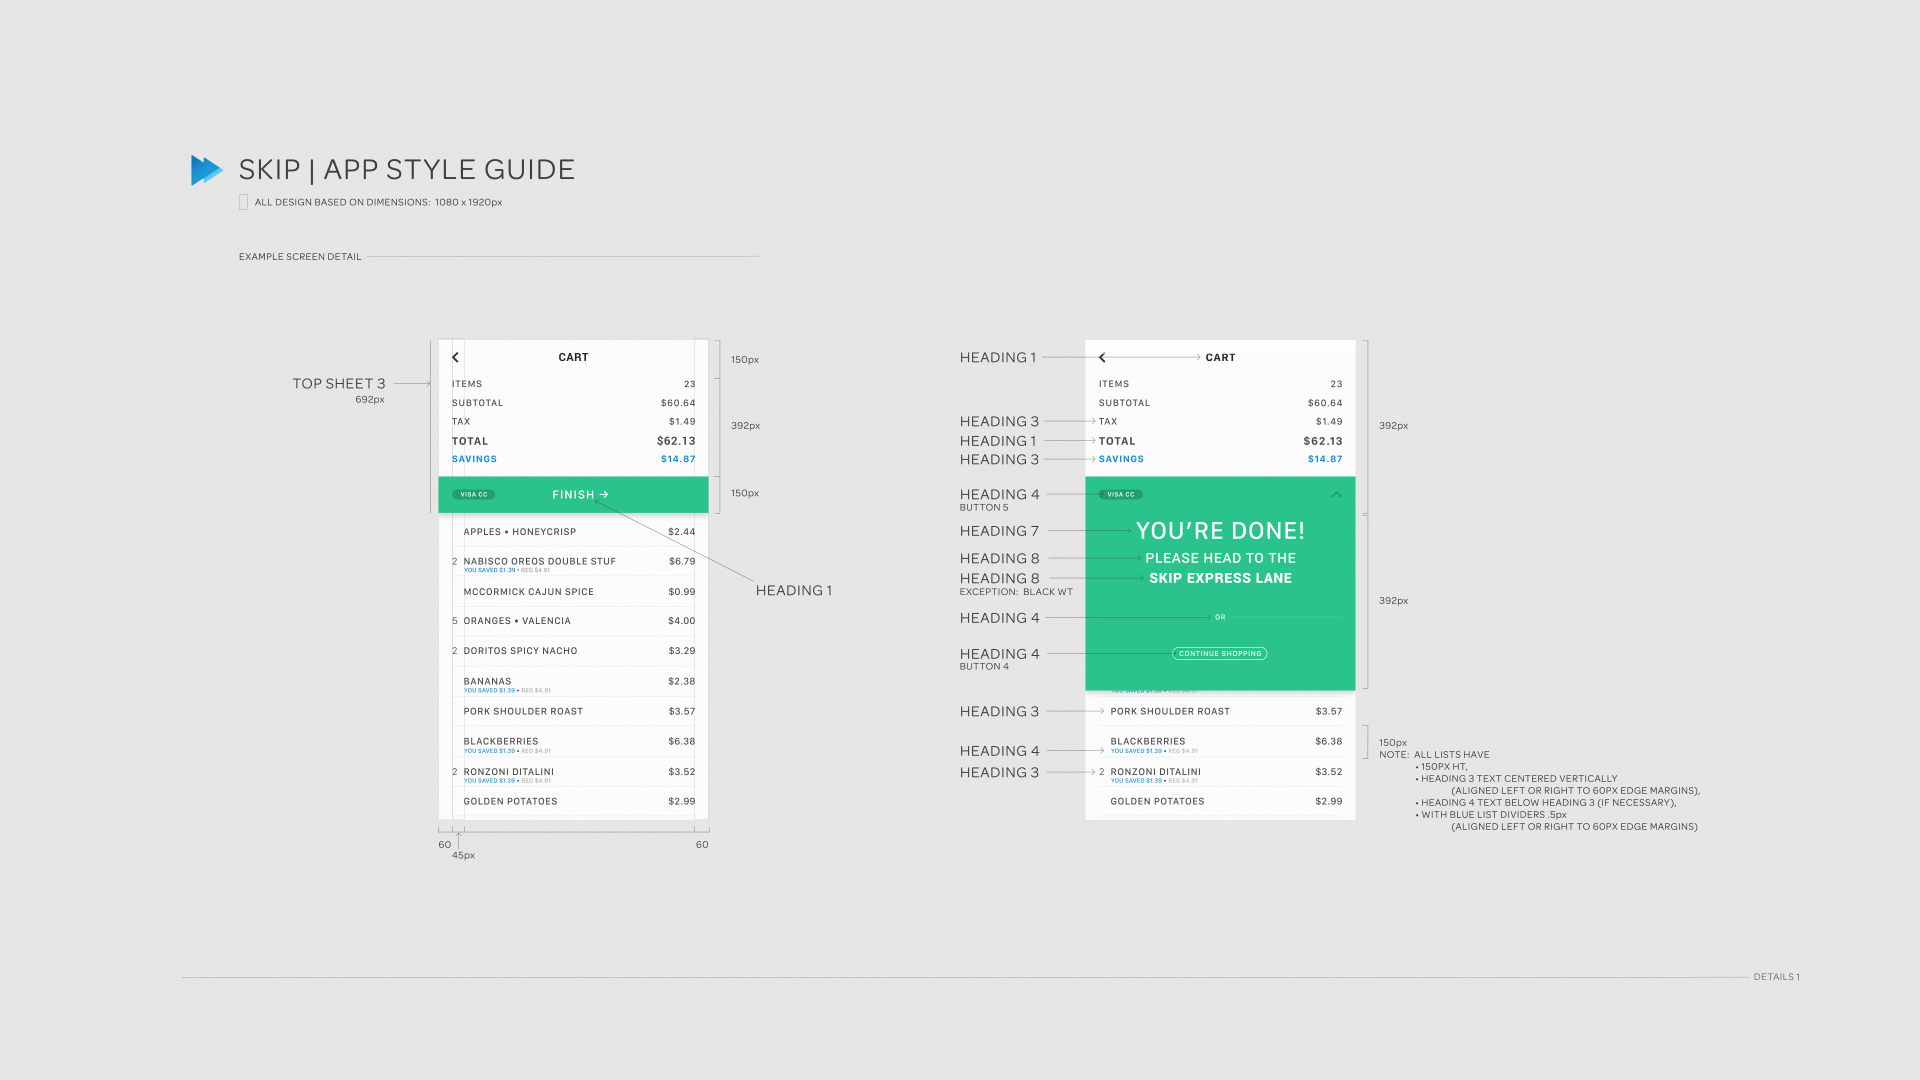 SKIP_App Style Guide-EXAMPLE SCREEN DETAILS.jpg